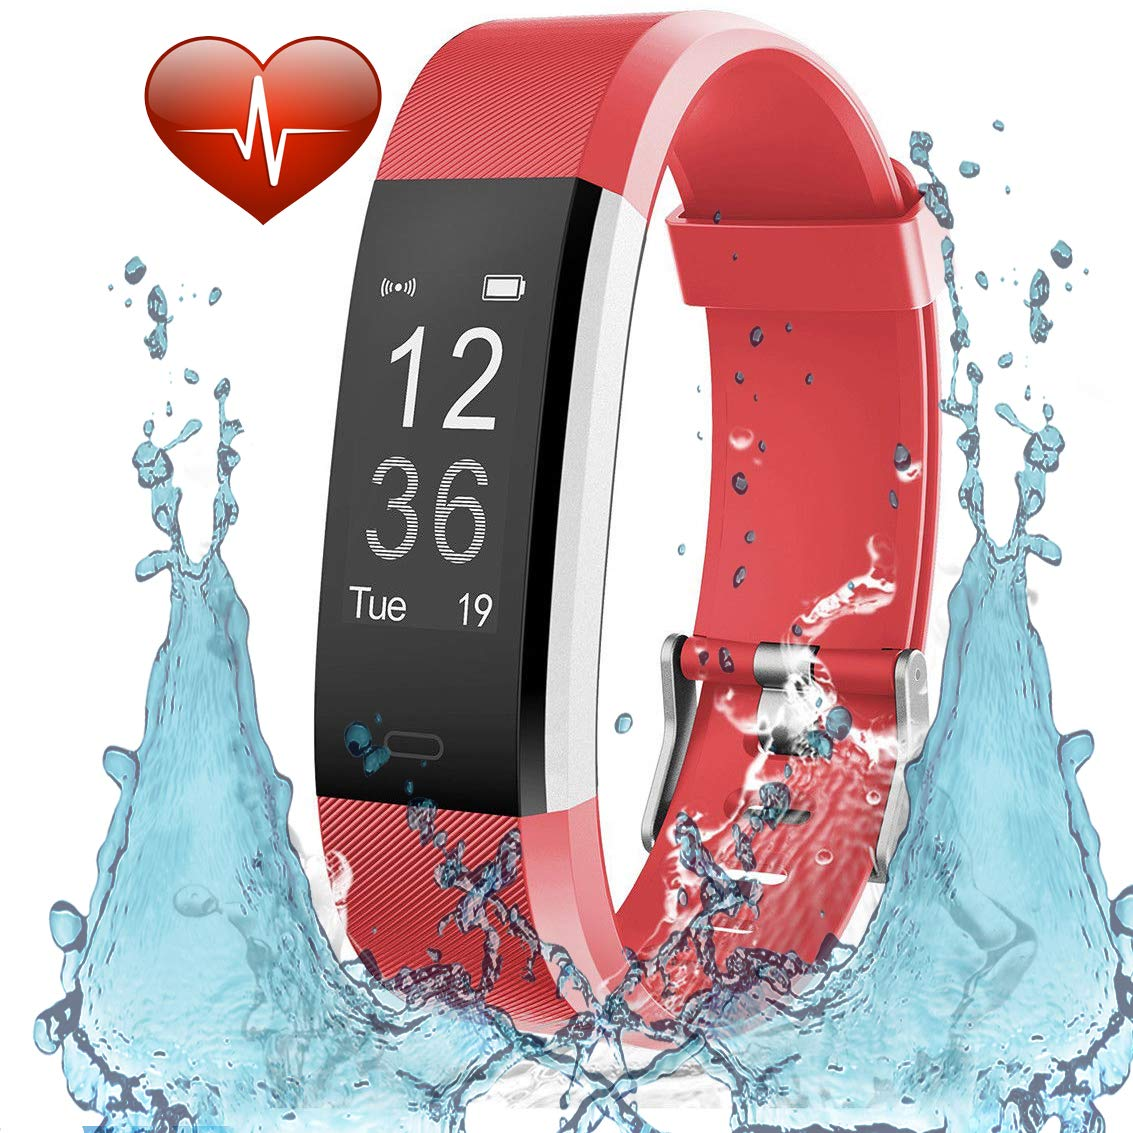 TRENDY PRO Fitness Tracker HR with Heart Rate Monitor, HR Smart Activity, Waterproof, Step & Calorie Counter, Compatible with Android & iOS Apple (Red)